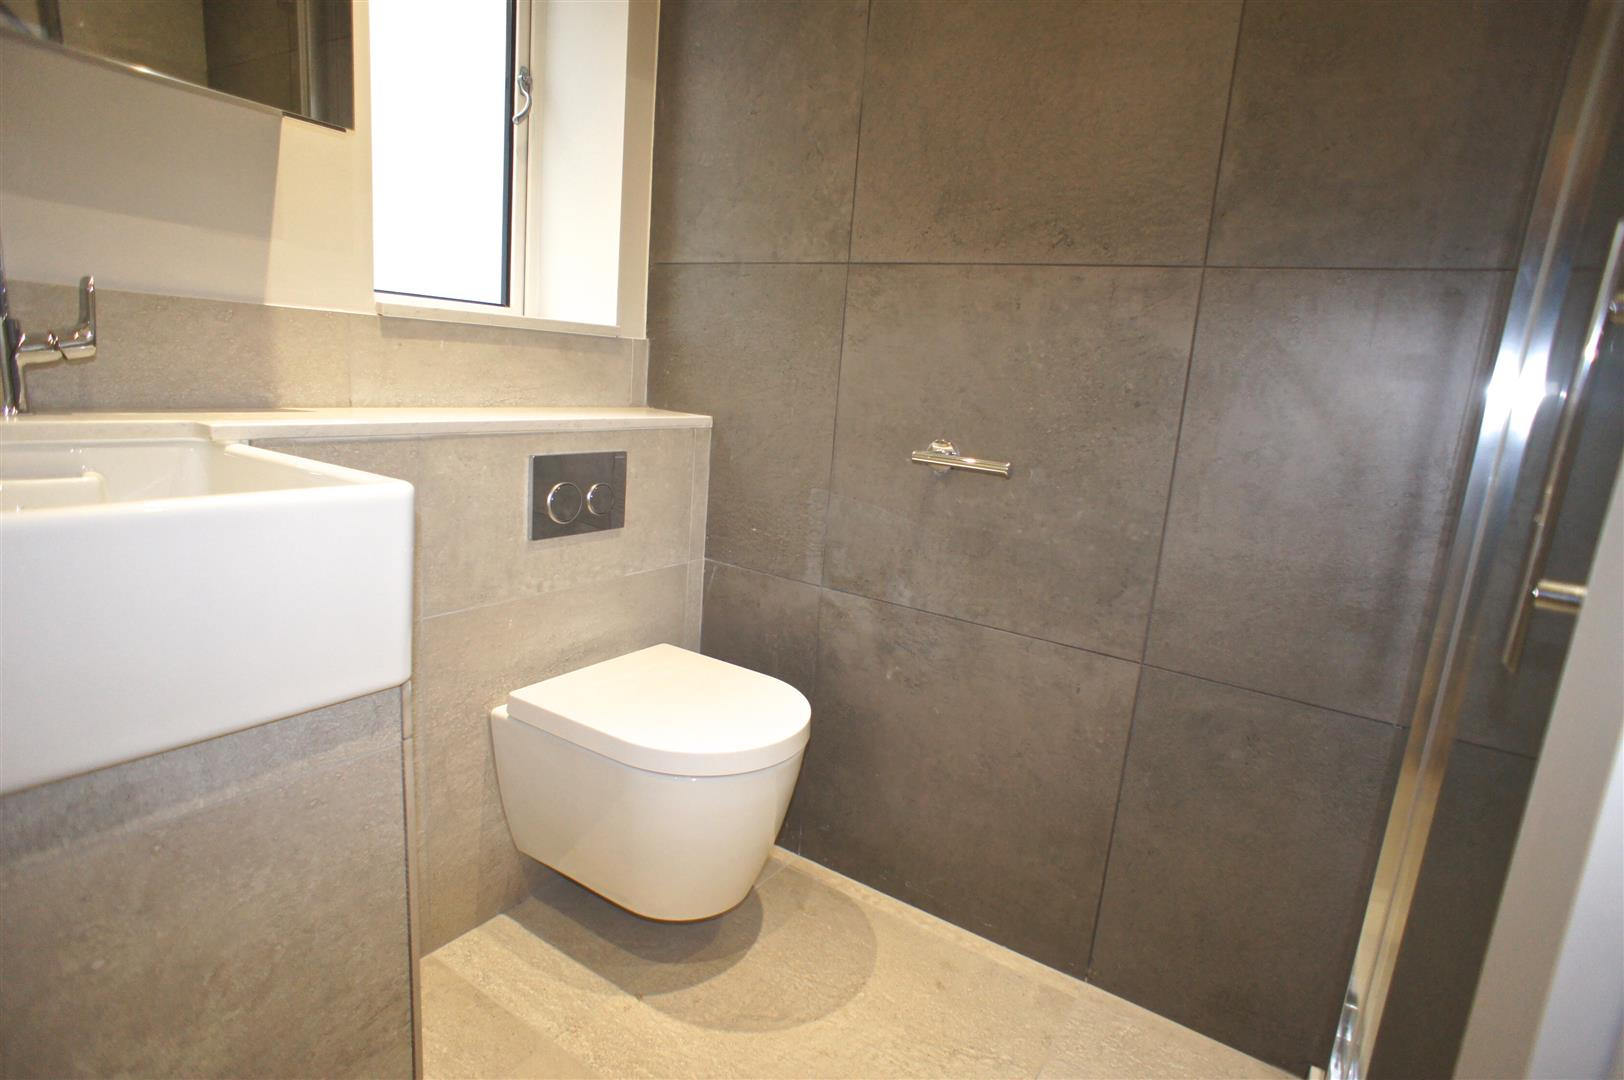 Utility/WC/Shower room